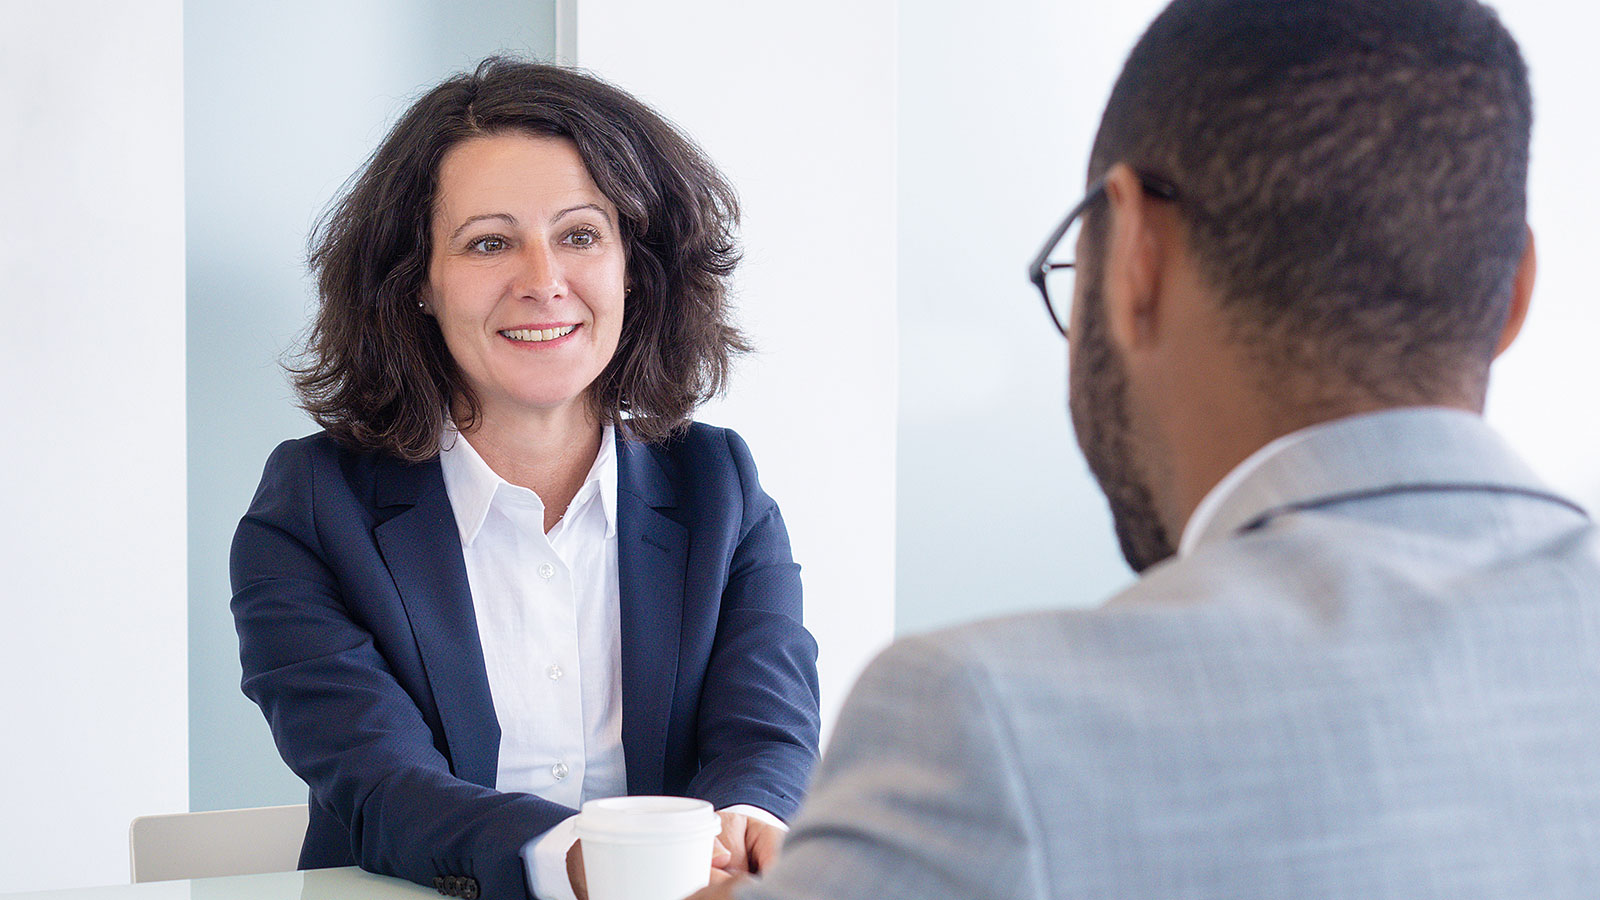 4 corporate culture questions to ask in a job interview